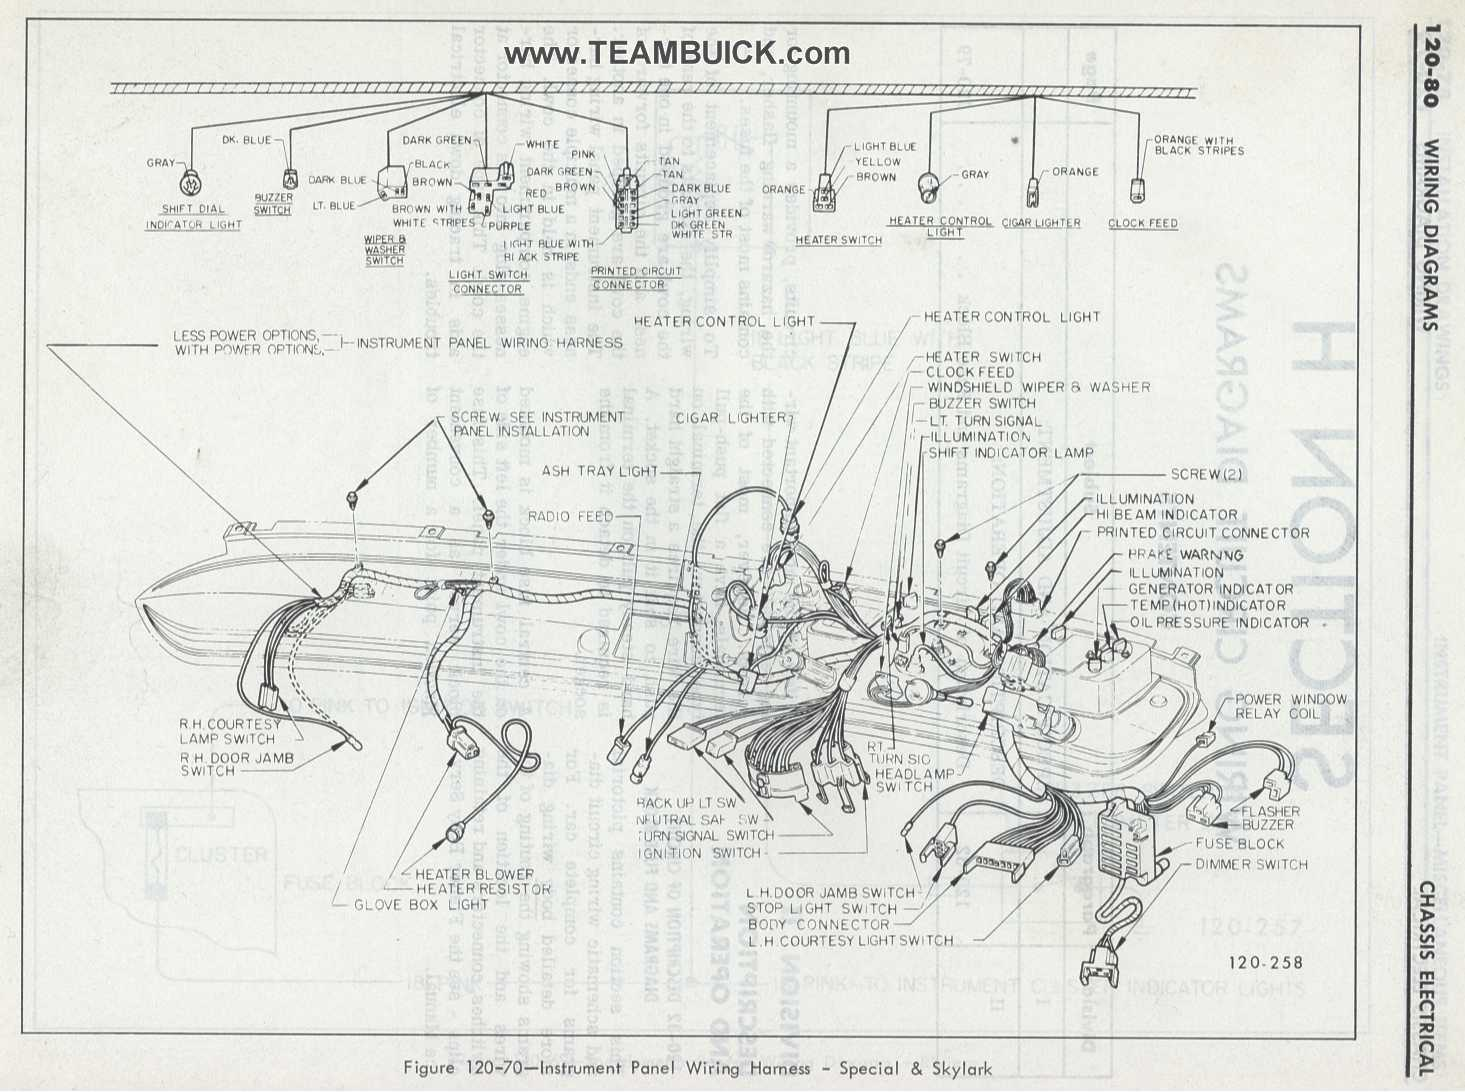 1969 Buick Riviera Wiring Diagram Starting Know About 70 Vw 1970 Skylark Get Free Image